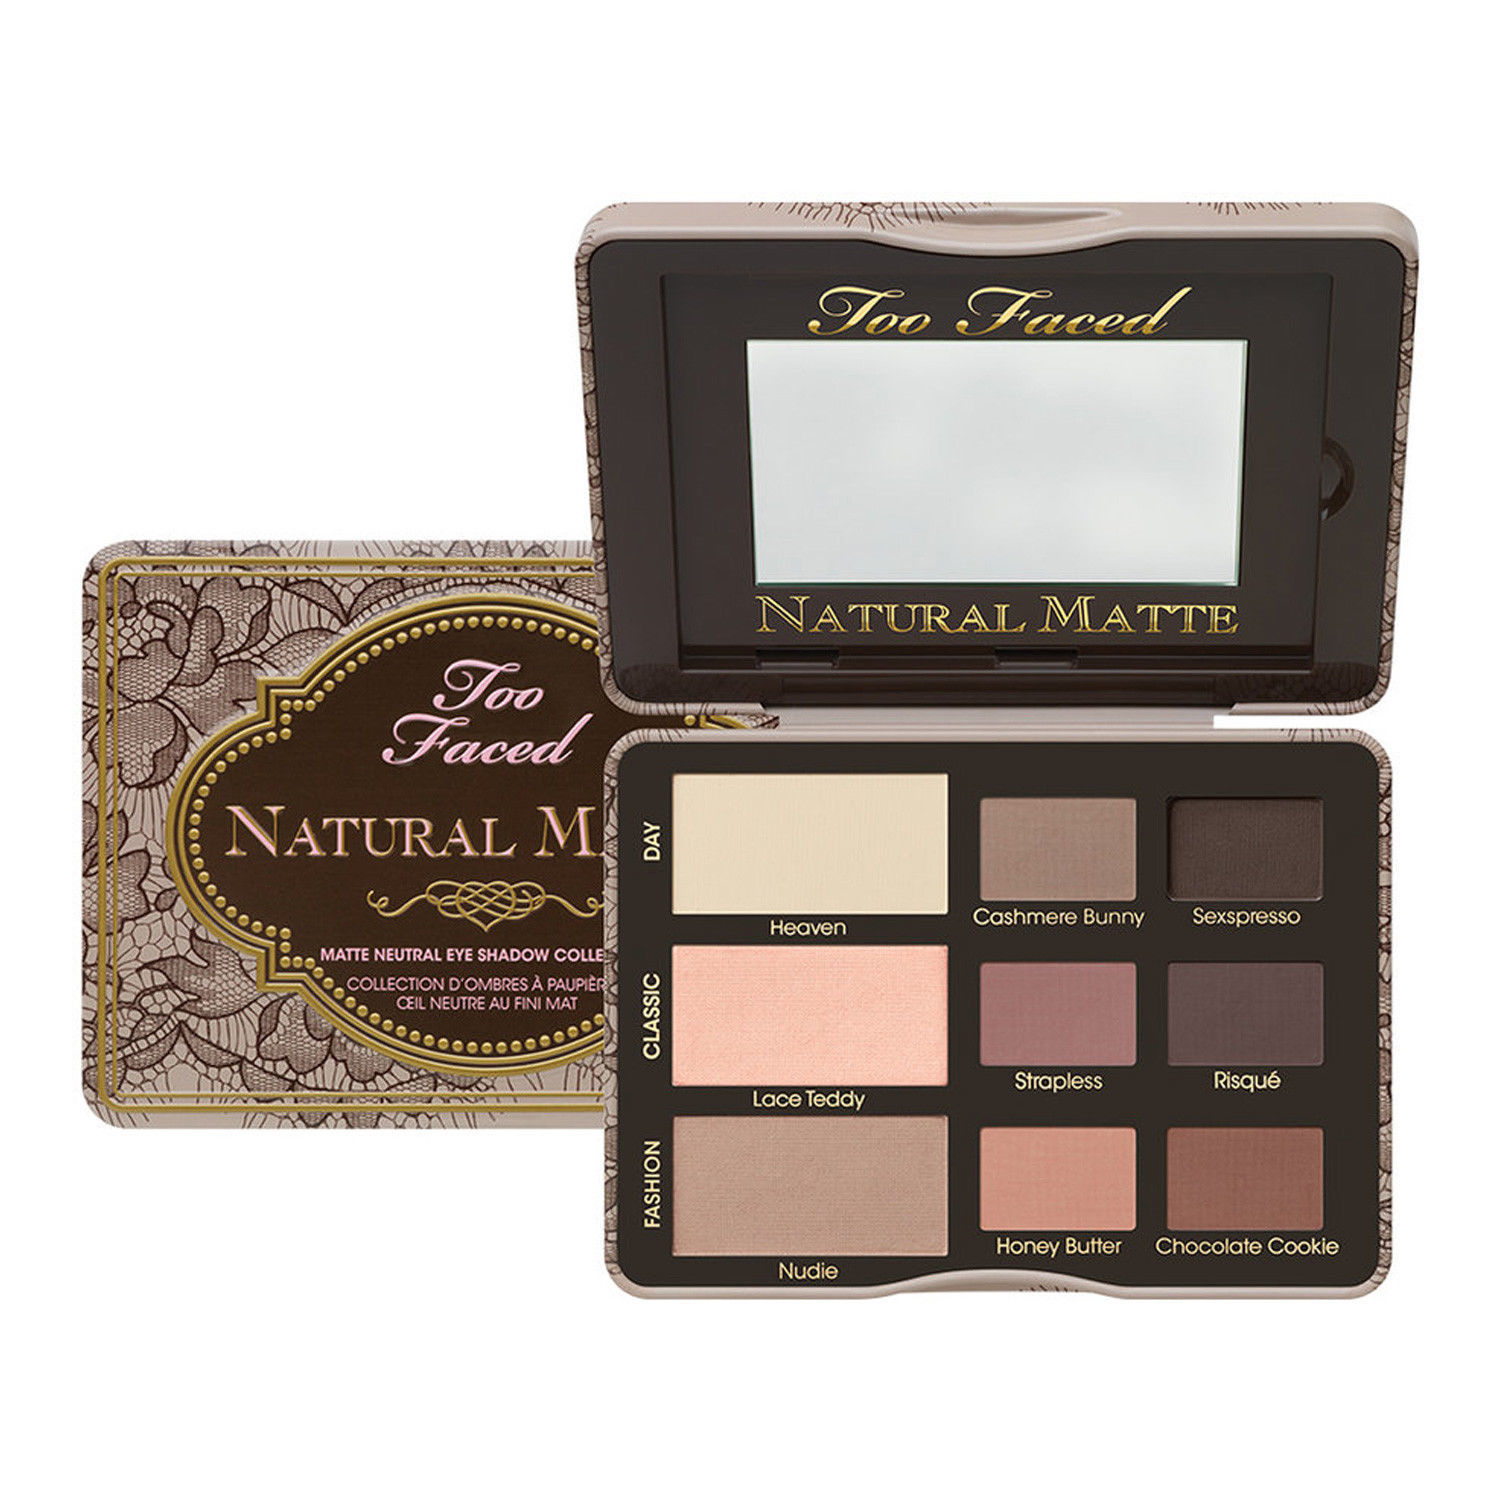 Too Faced 9 Colors Natural Matte Neutral Shades Eye Shadow